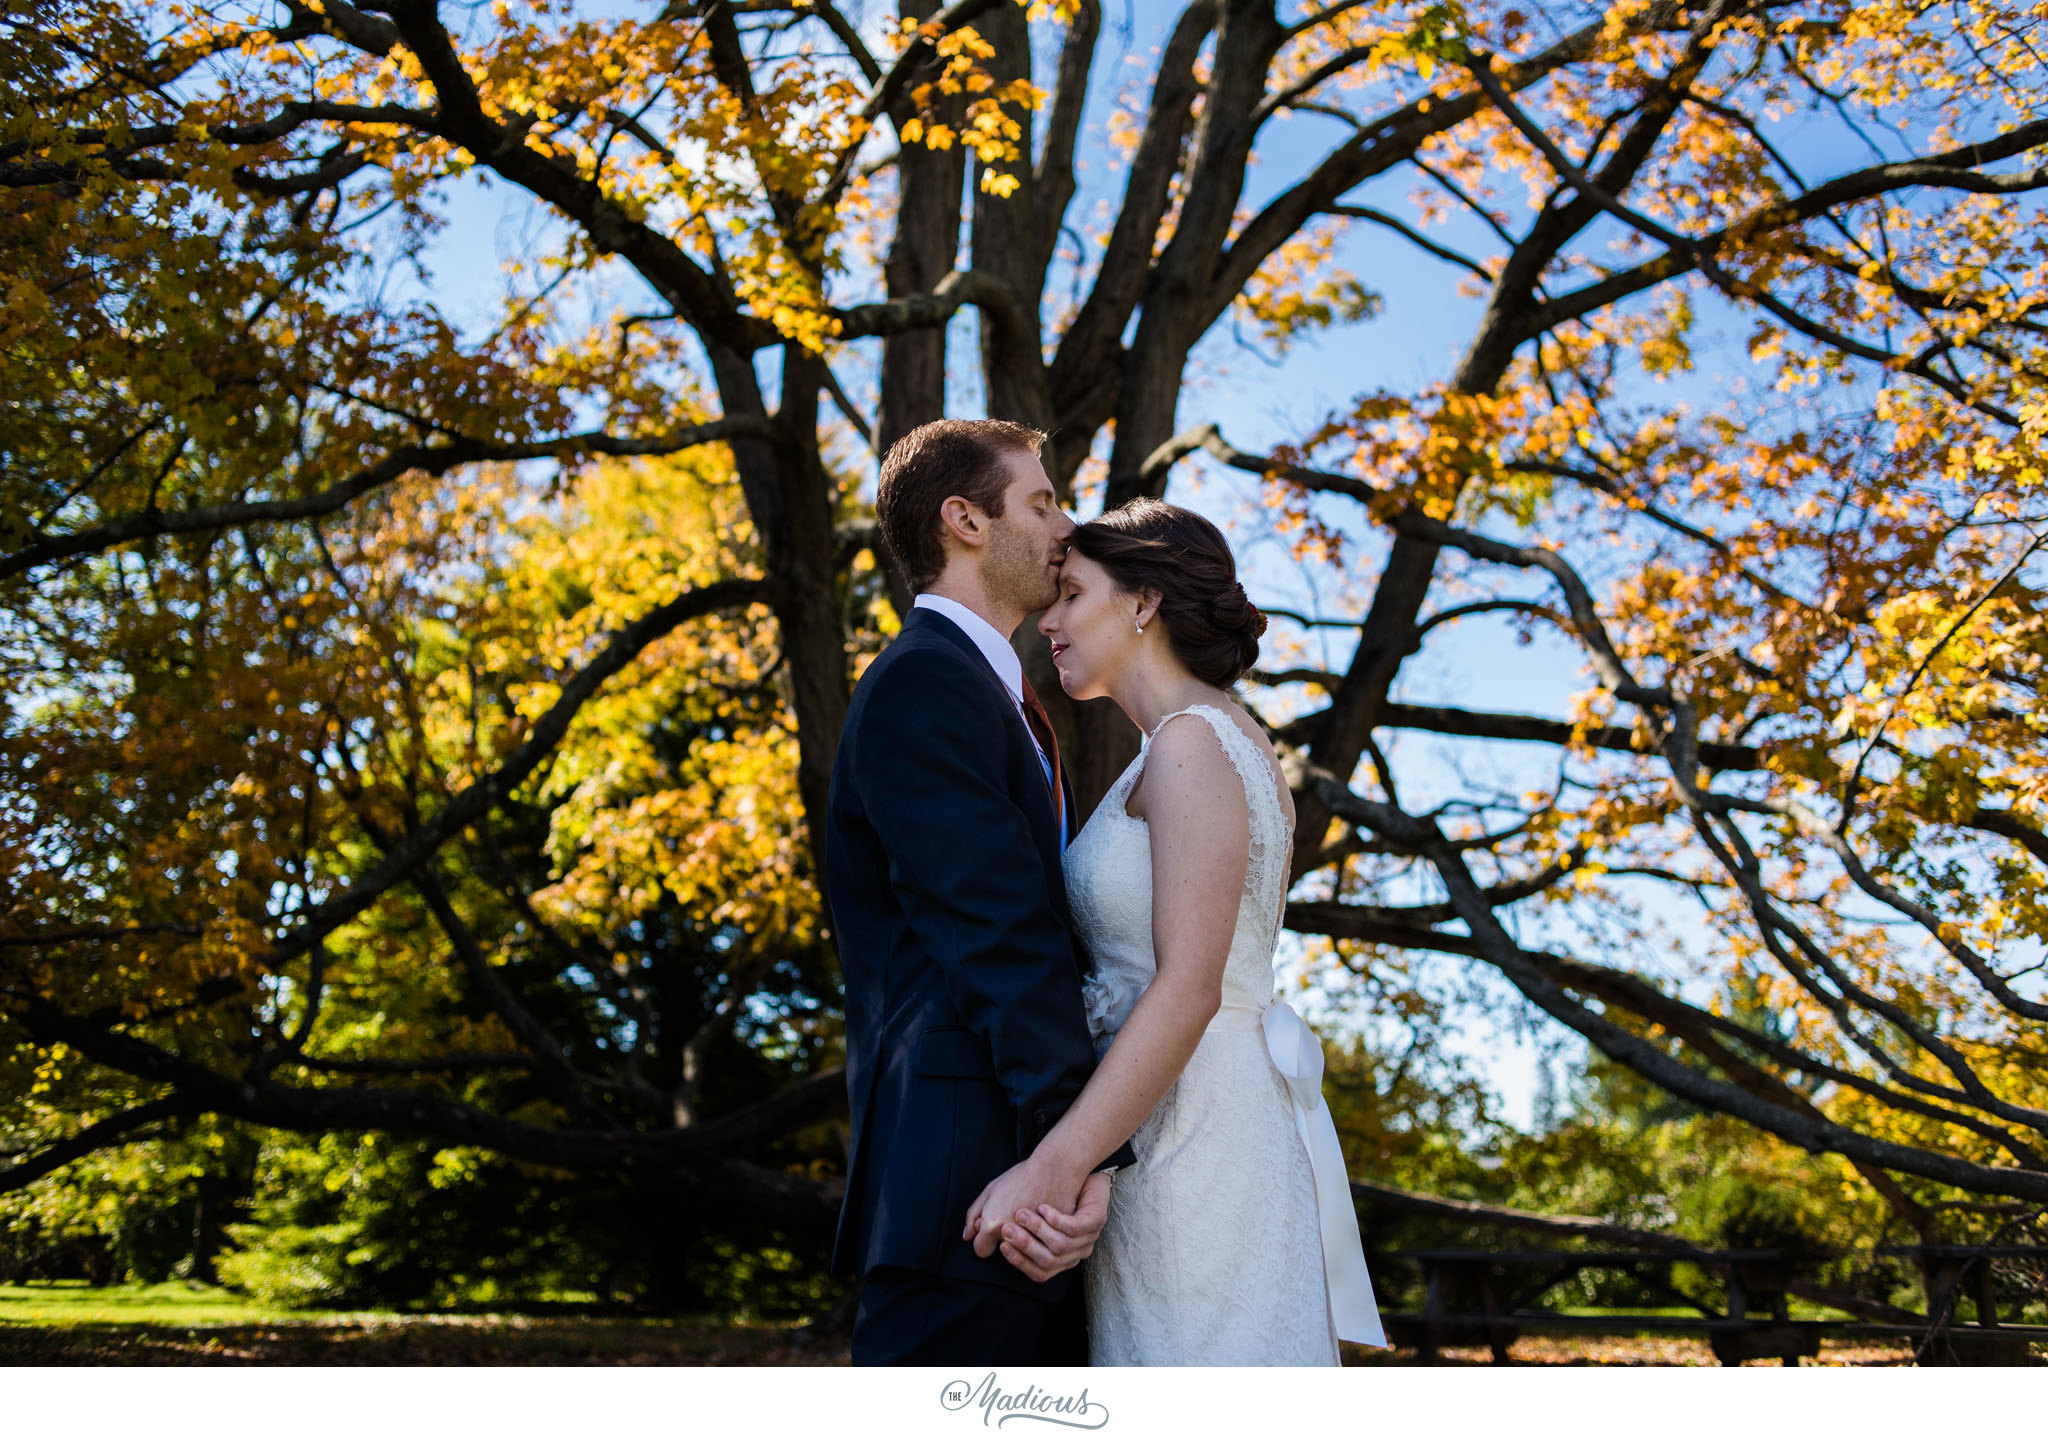 Cylburn Arboretum wedding photojournalism bride groom portraits